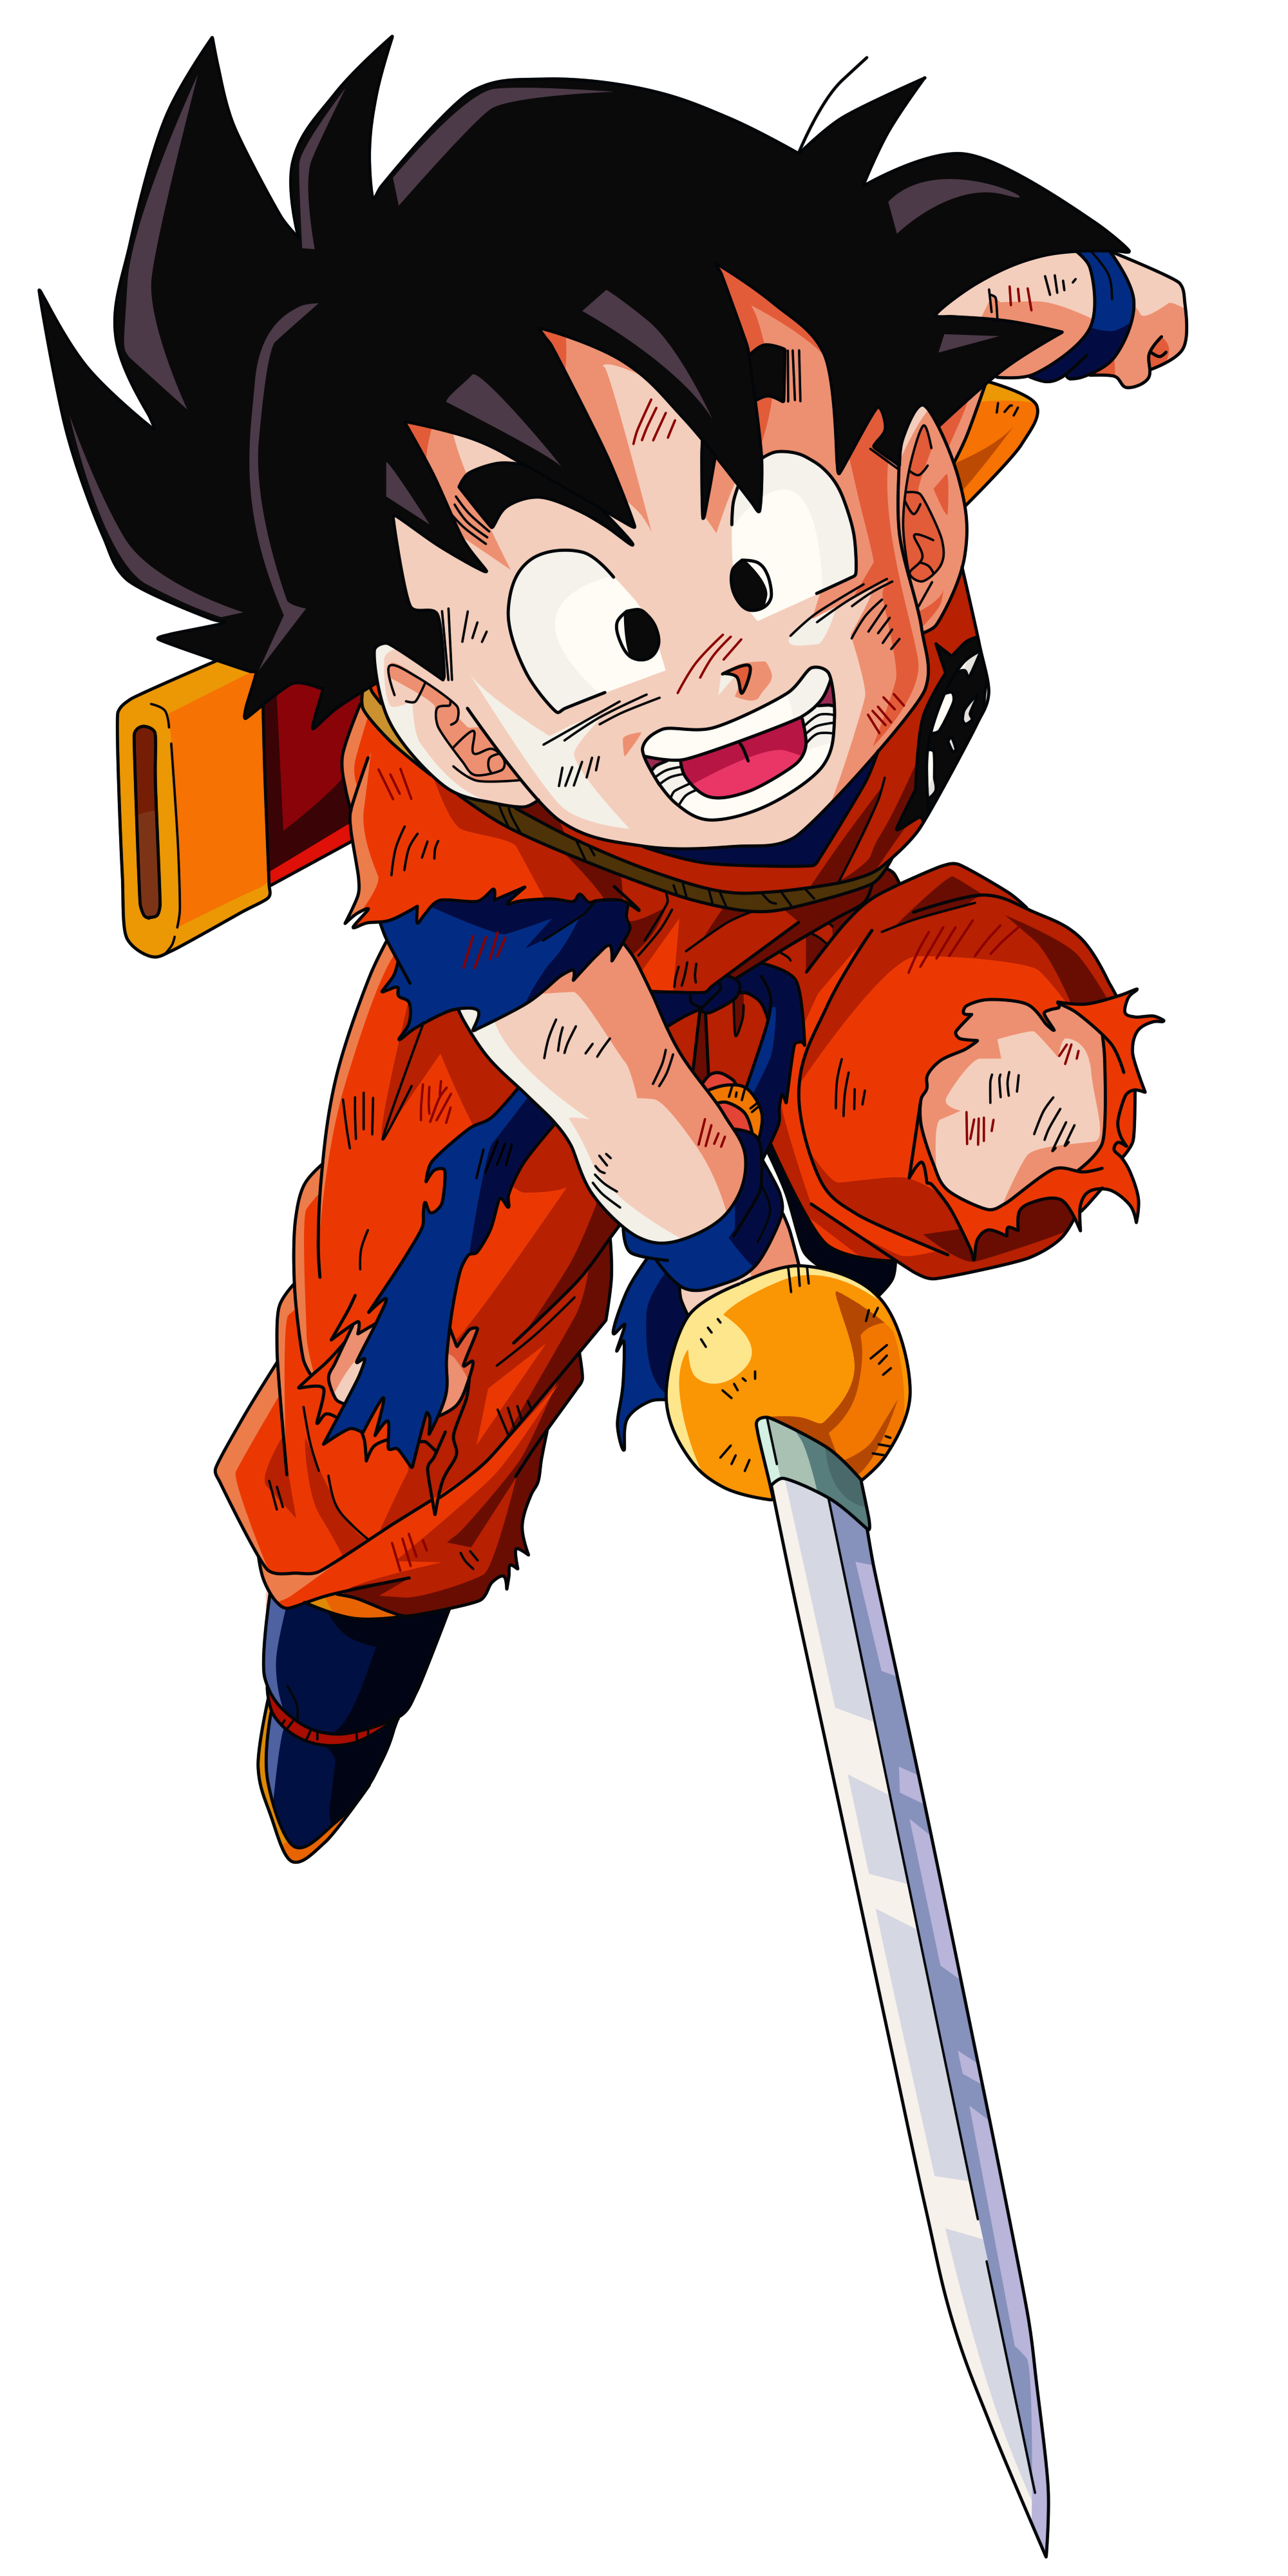 Gohan dbz vs wiki fandom powered by wikia - Dragon ball z gohan images ...